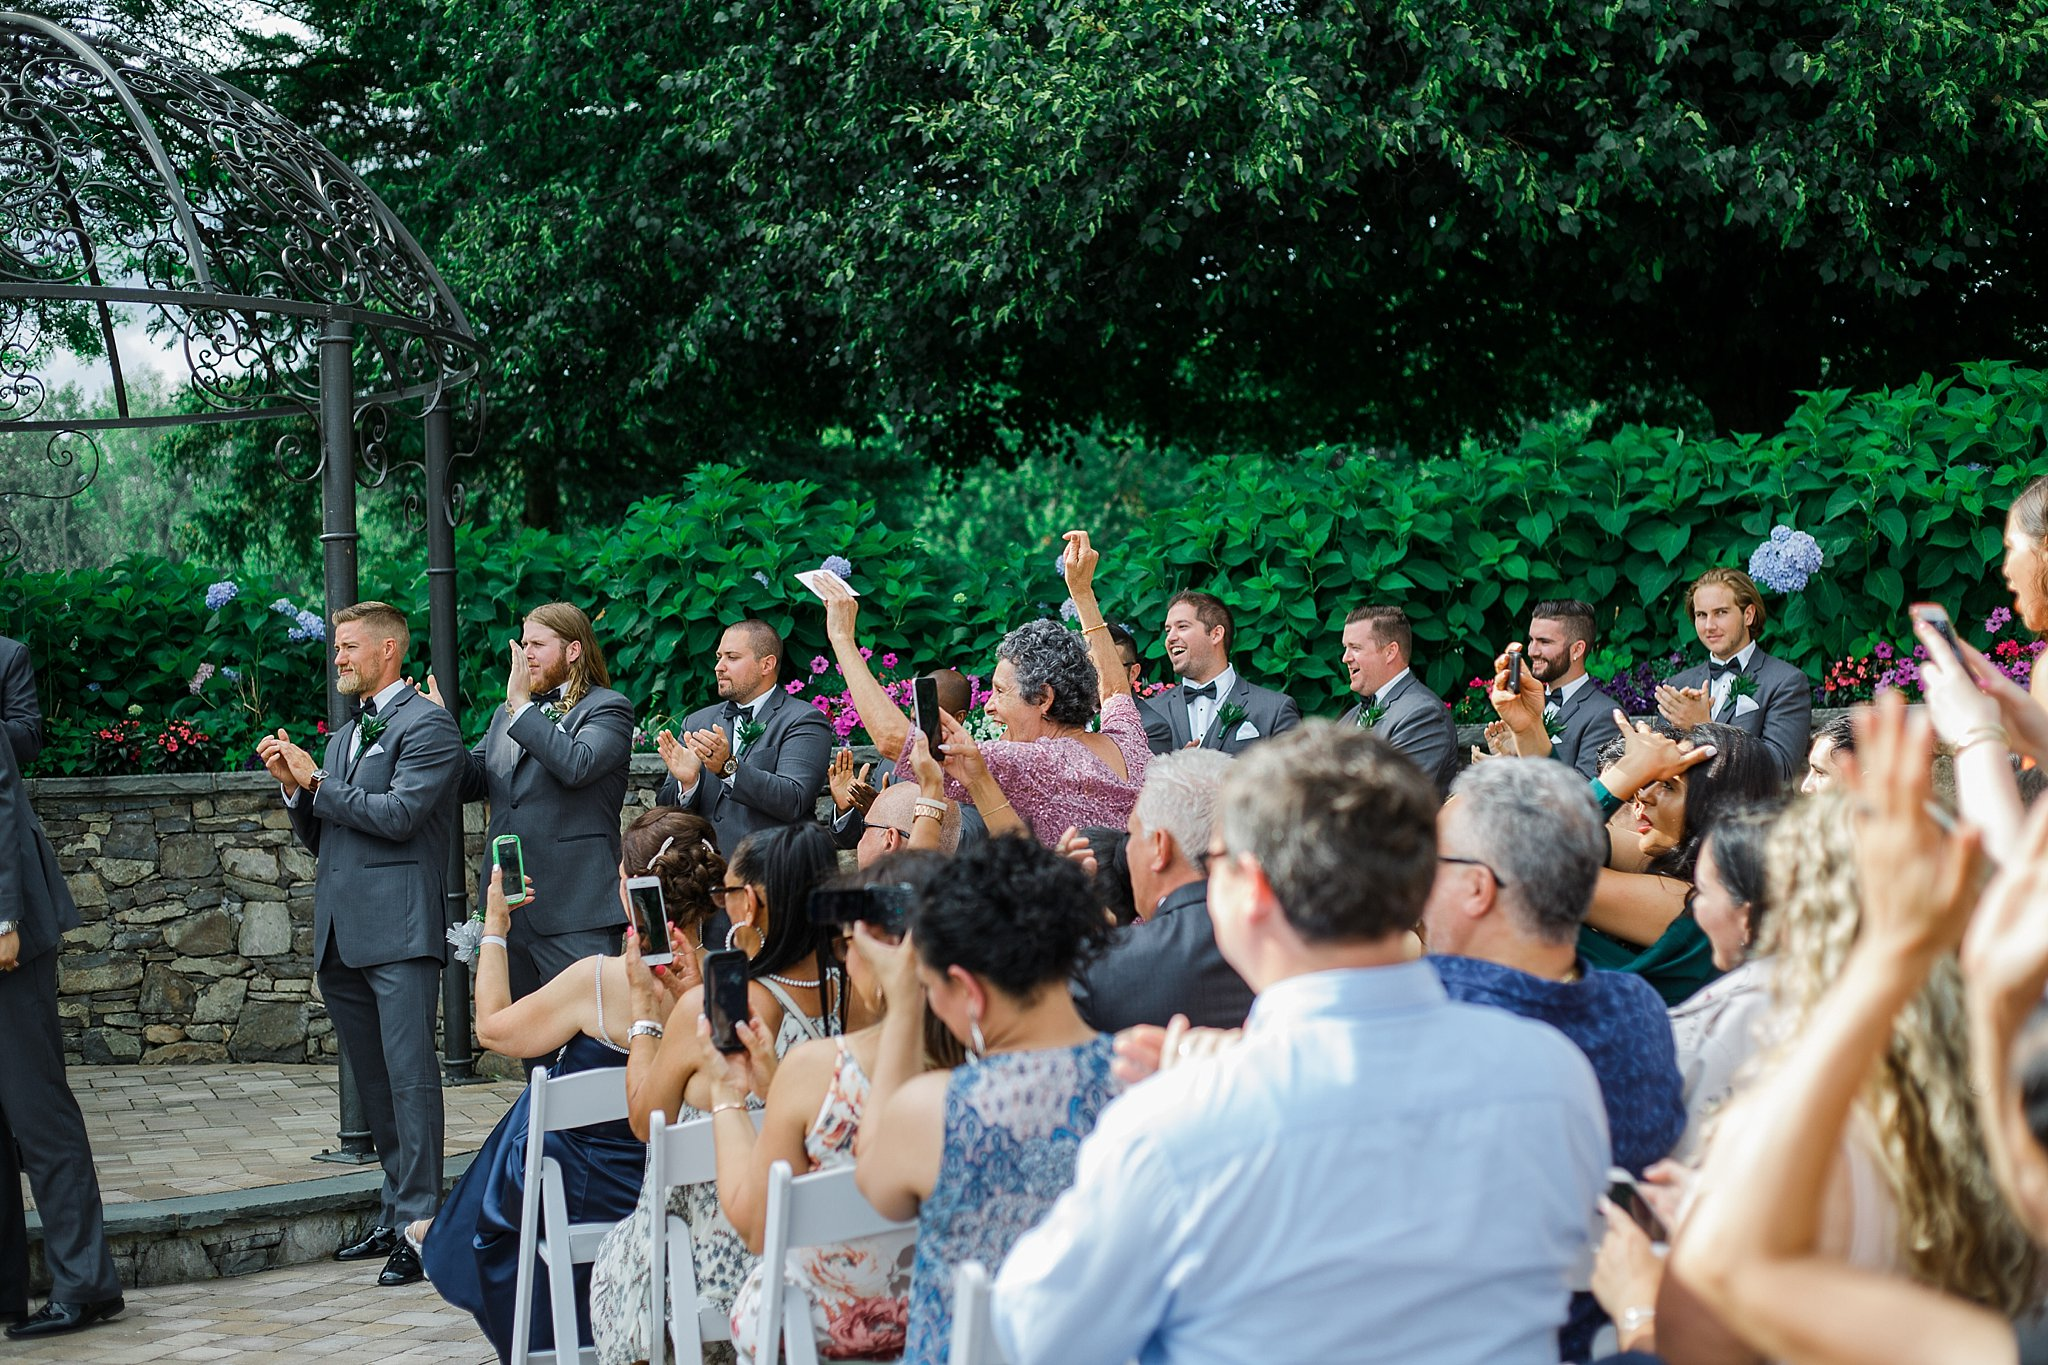 West Hills Country Club Wedding July Wedding Hudson Valley Wedding Hudson Valley Wedding Photographer Sweet Alice Photography74.jpg